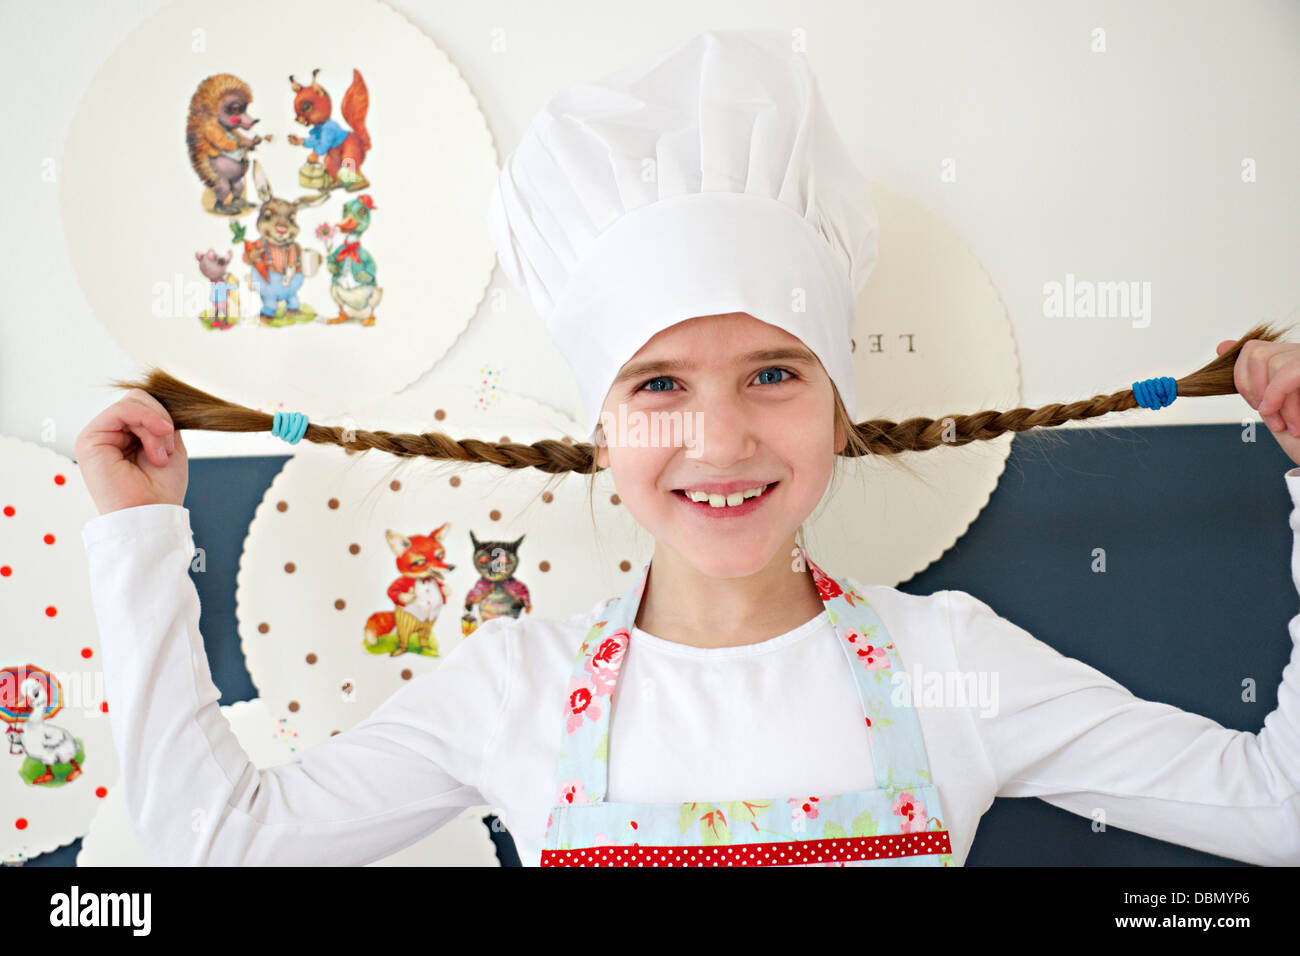 Little girl with chef's hat fooling around with her pigtails, Munich, Bavaria, Germany - Stock Image